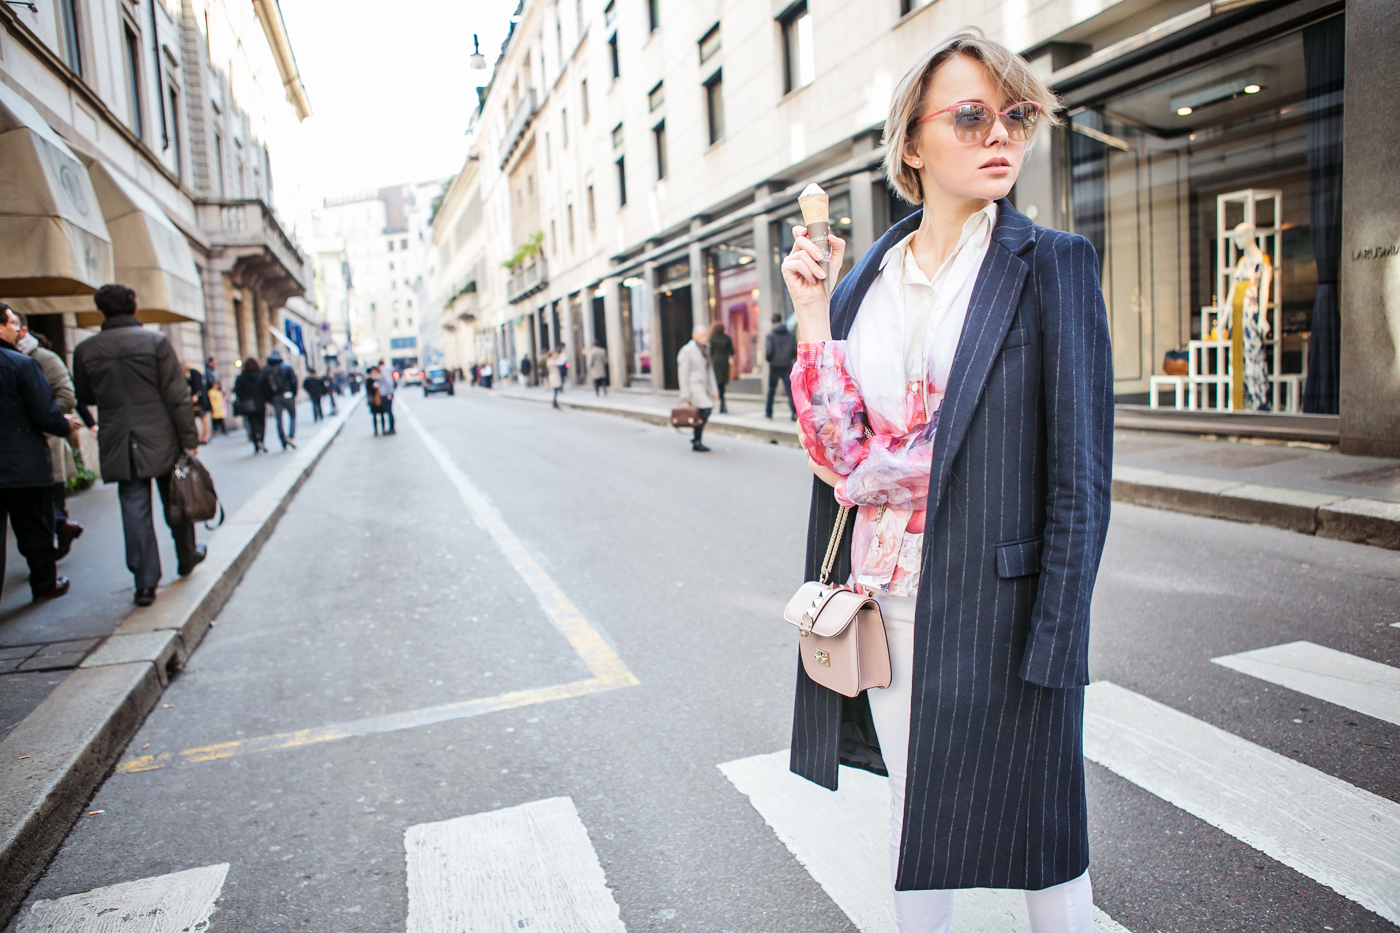 thecablook darya kamalova russian italian blogger street style short blonde hair mfw milan zara stripes coat valentino rock stud bag asos white jeans new balance trainers la rinascente terrazza aperol excelsior montenapoleone via duomo-26